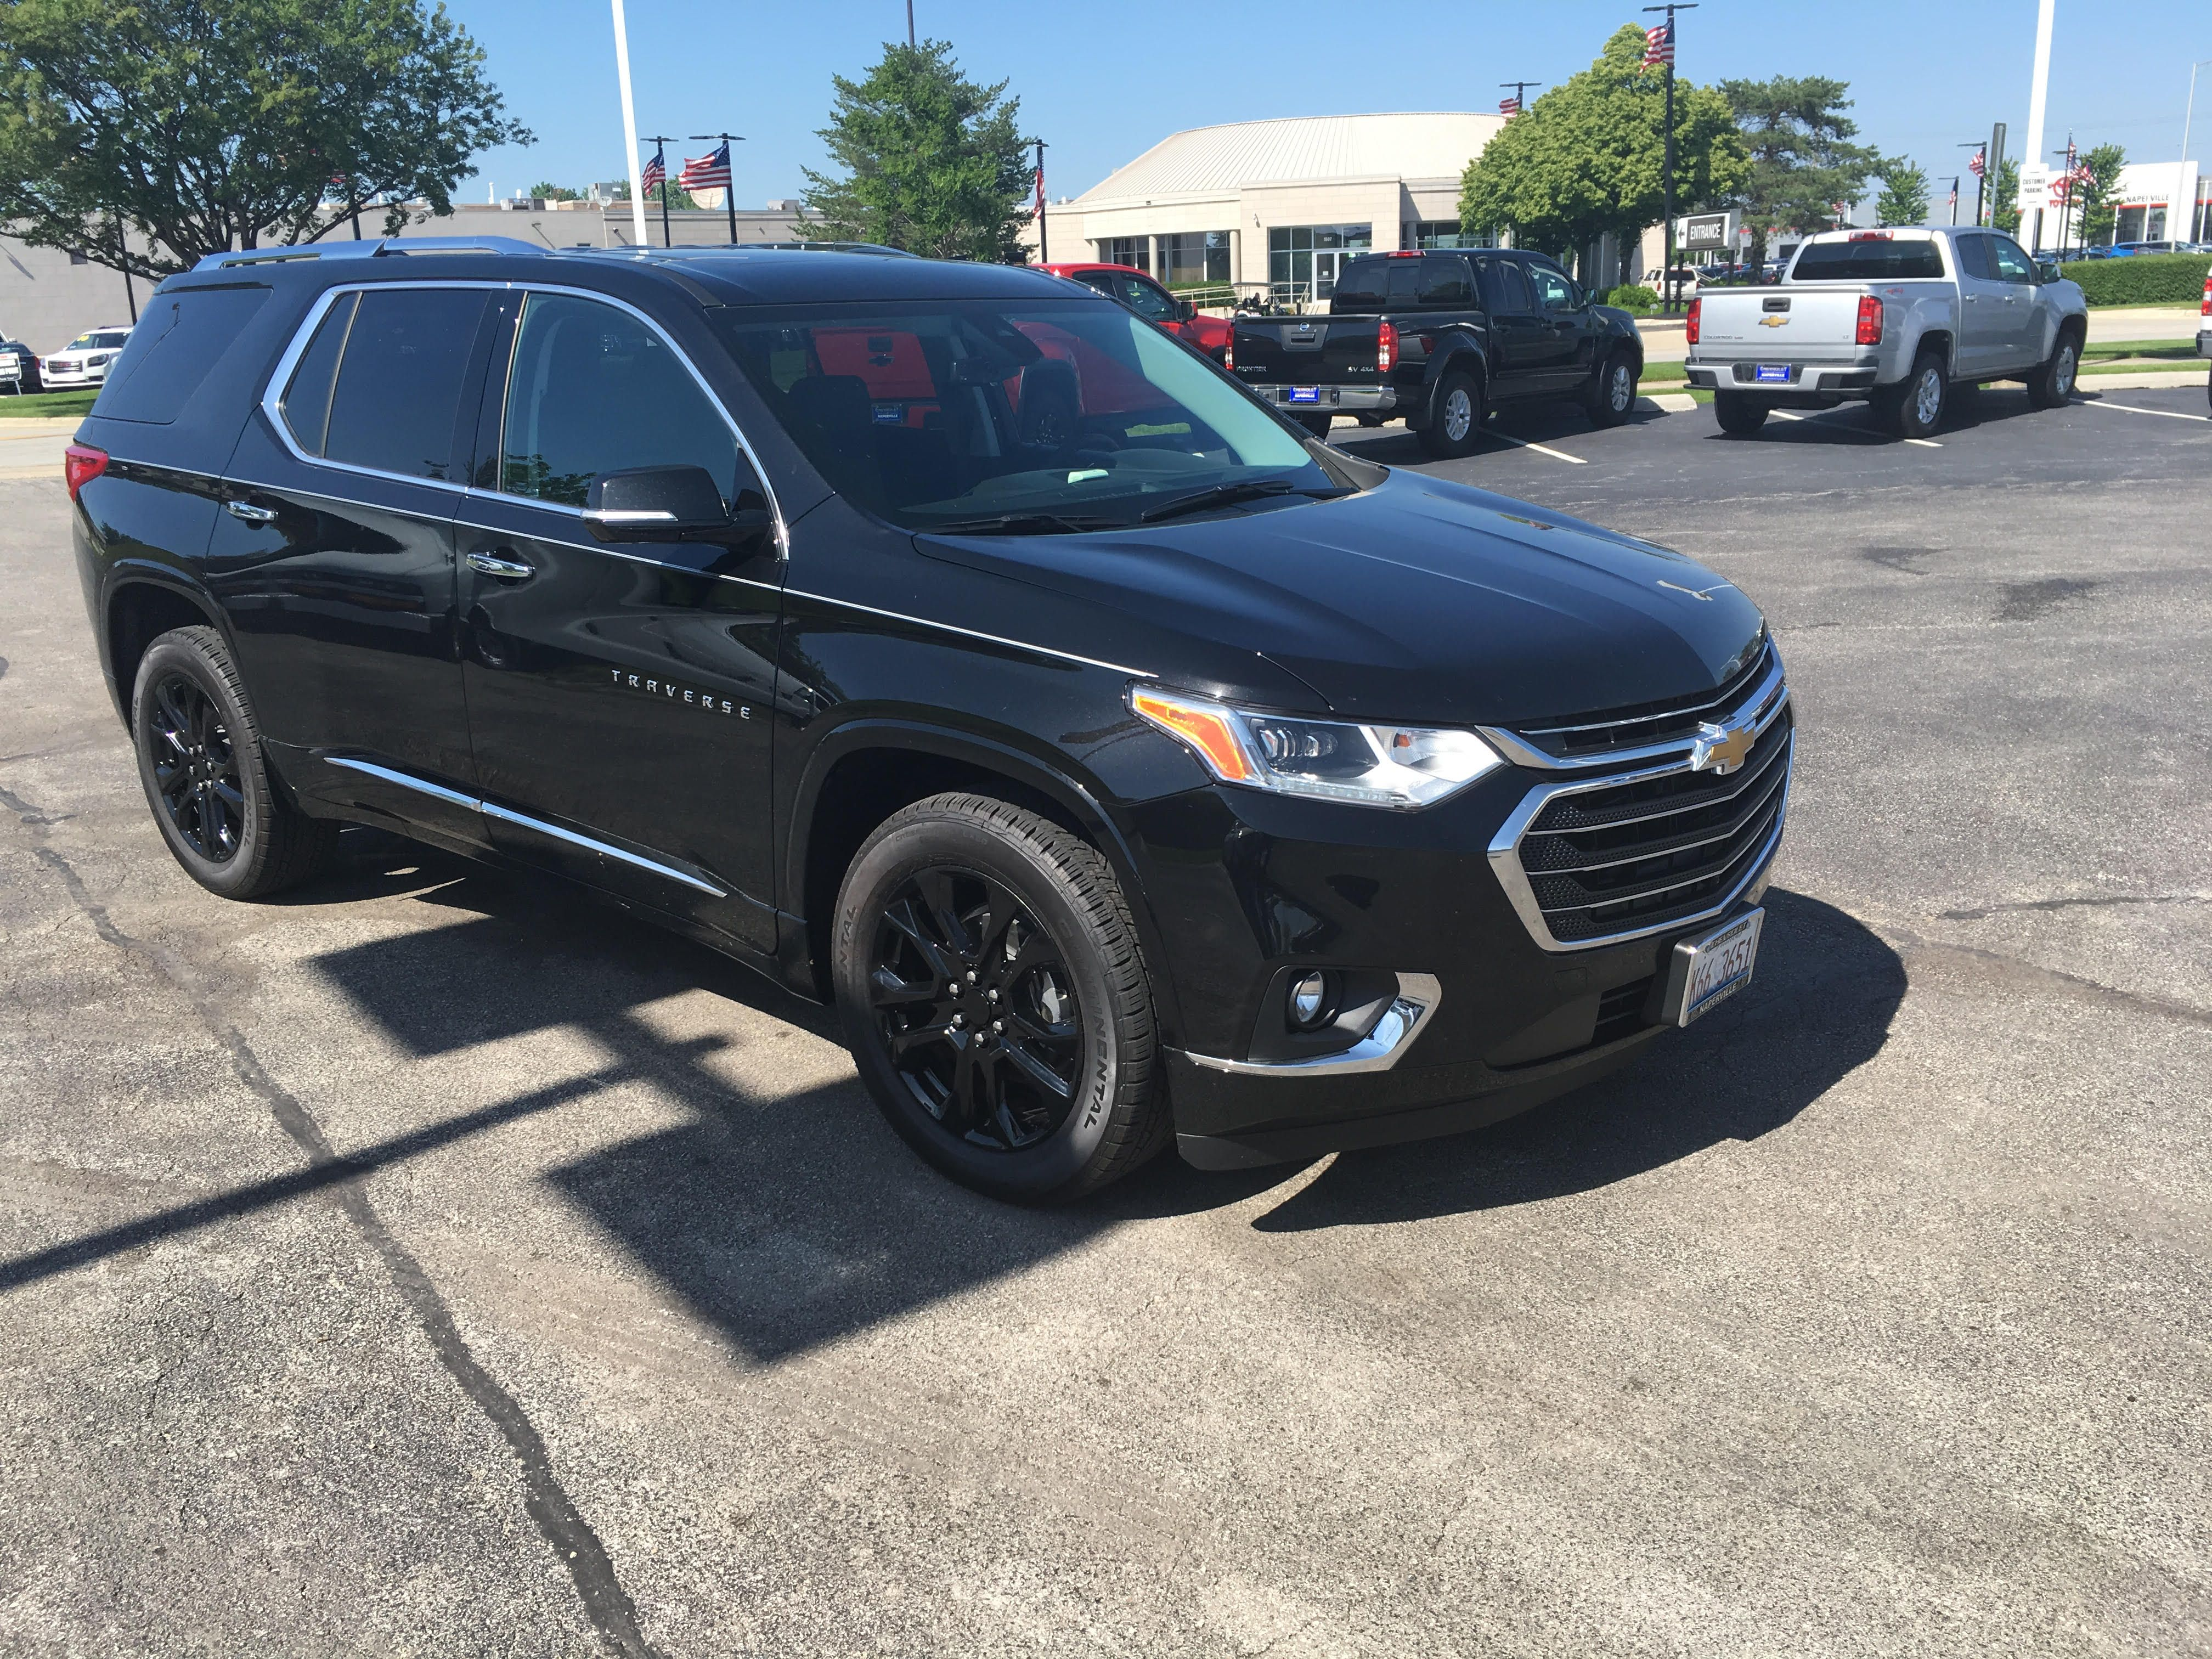 2019 Chevrolet Traverse With Gloss Black Wheels And Continental Tires Chevy Chevrolet Traverse Cvd Customvehicl Black Wheels Chevrolet Traverse Chevy Girl